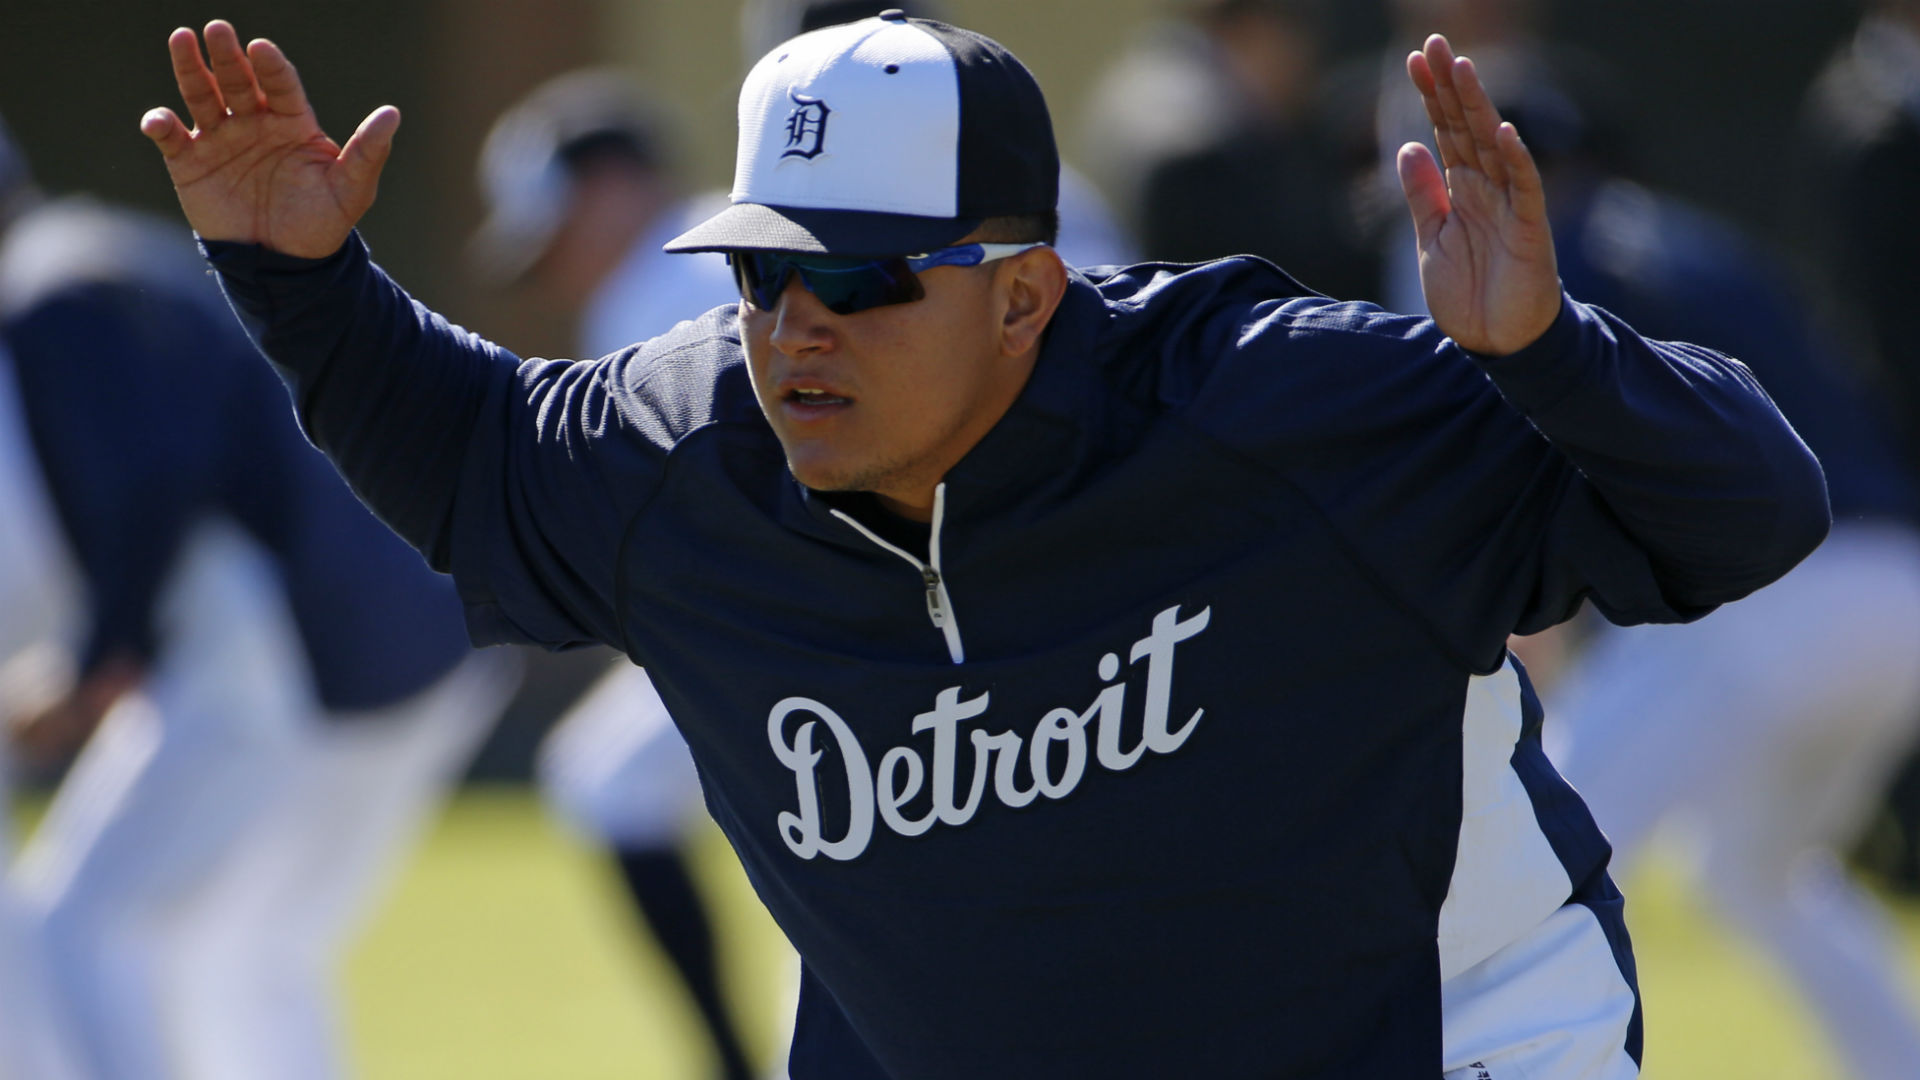 Third base preview: Cabrera leads top-heavy class at the hot corner